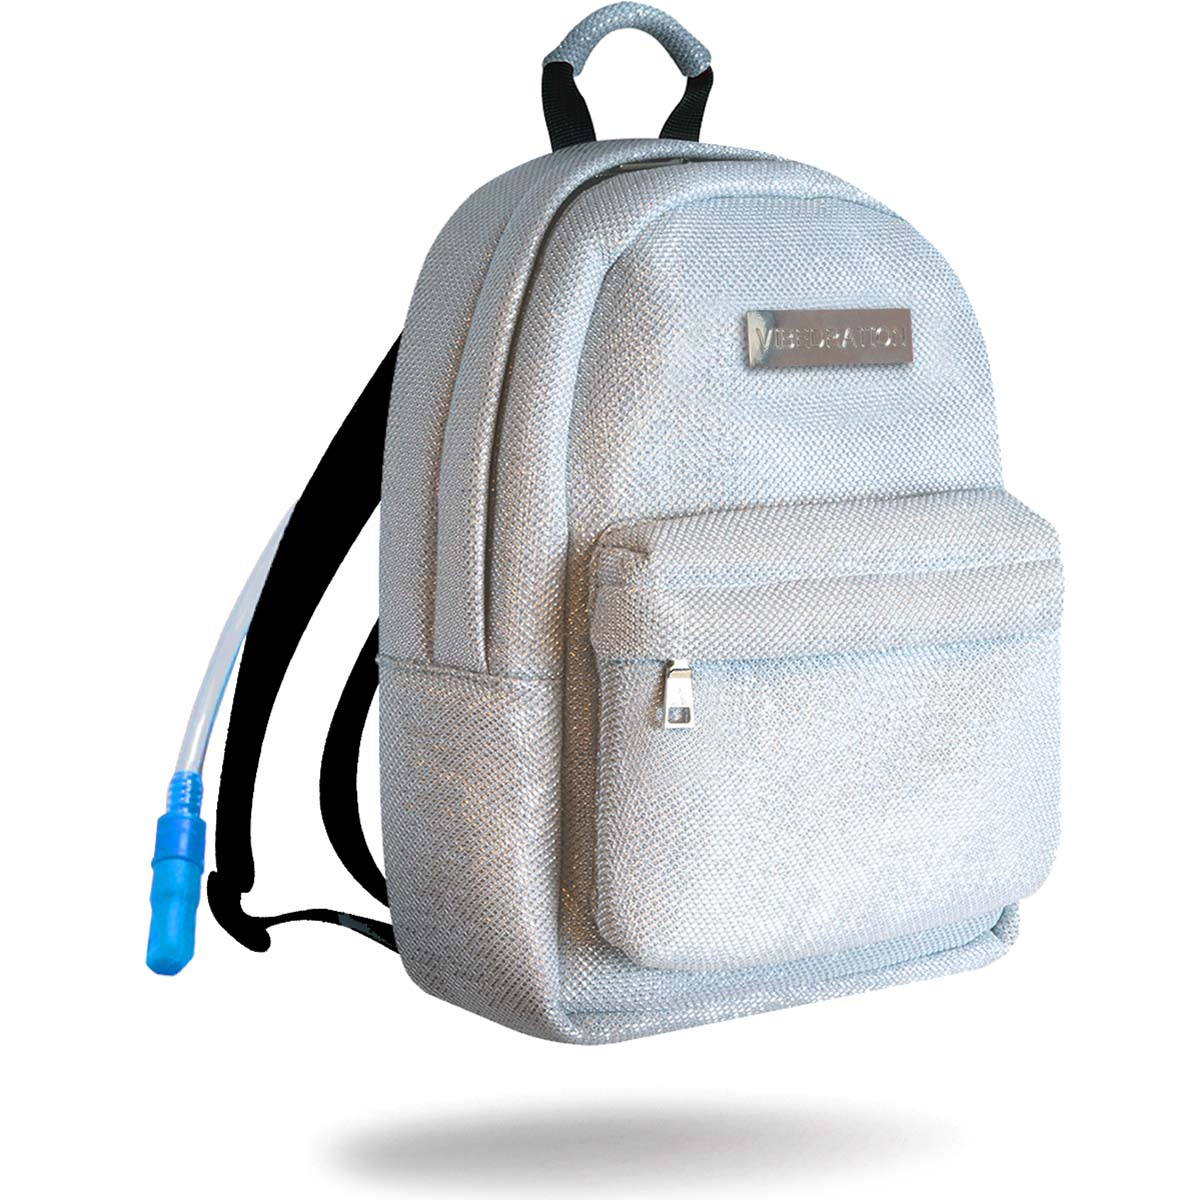 Titanium silver water backpack with rainbow zippers and silver logo plate.